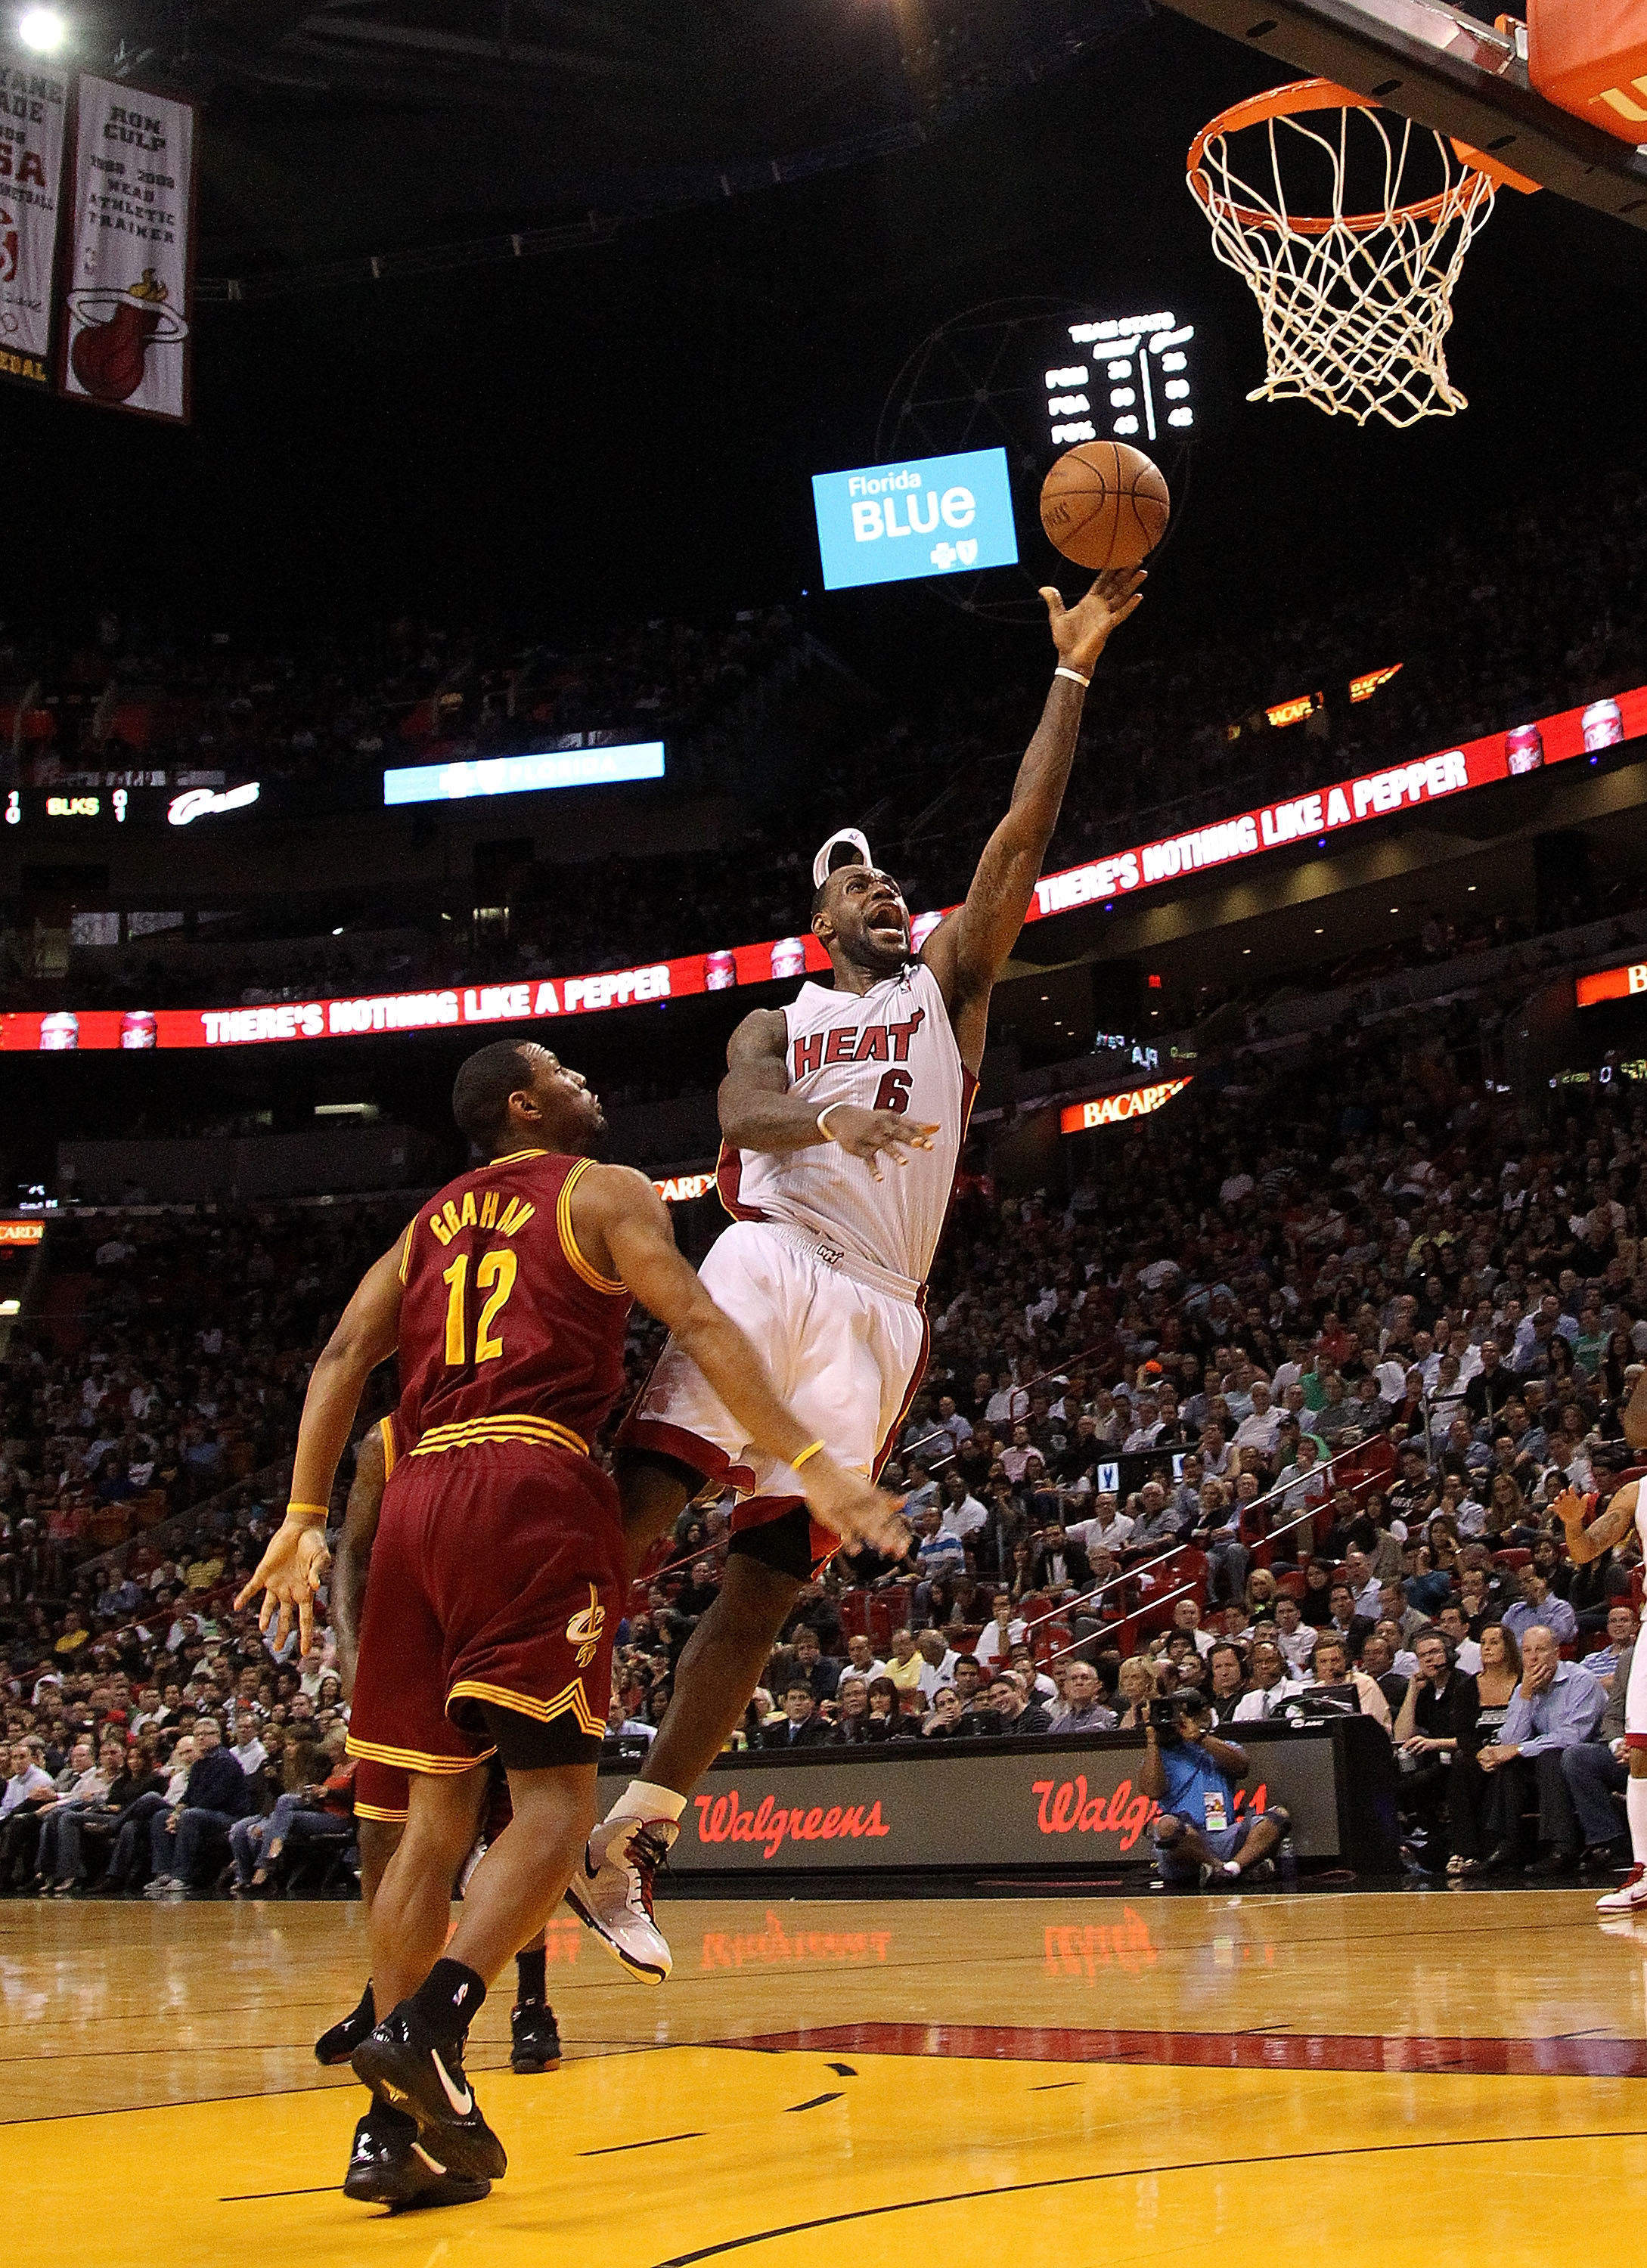 MIAMI, FL - JANUARY 31:  LeBron James #6 of the Miami Heat takes a shot against Joey Graham #12 of the Cleveland Cavaliers during a game at American Airlines Arena on January 31, 2011 in Miami, Florida. NOTE TO USER: User expressly acknowledges and agrees